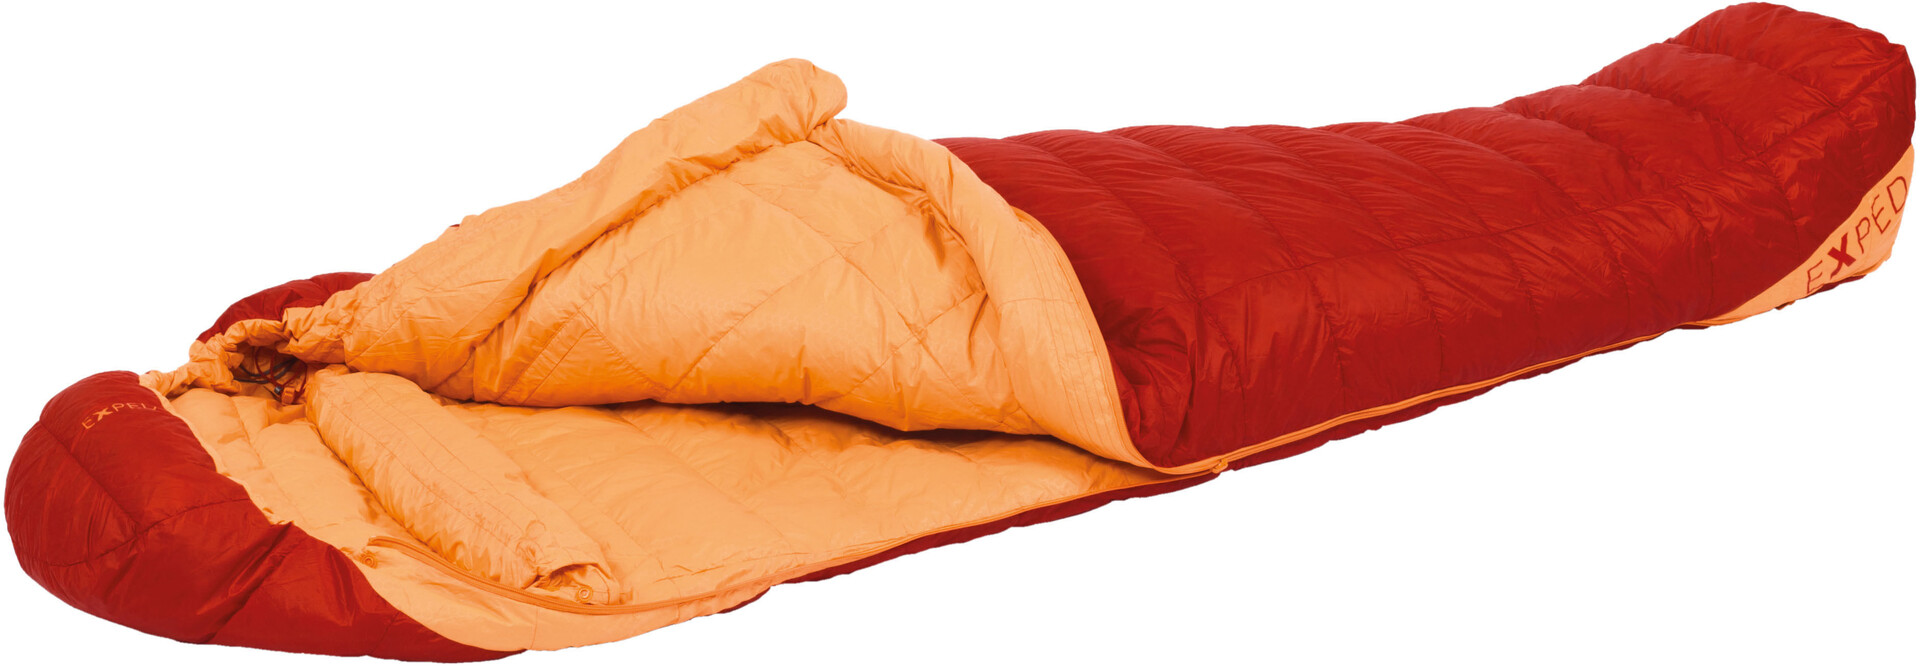 Exped Exped Exped Lite Sleeping Bag -11° M 6f9c29